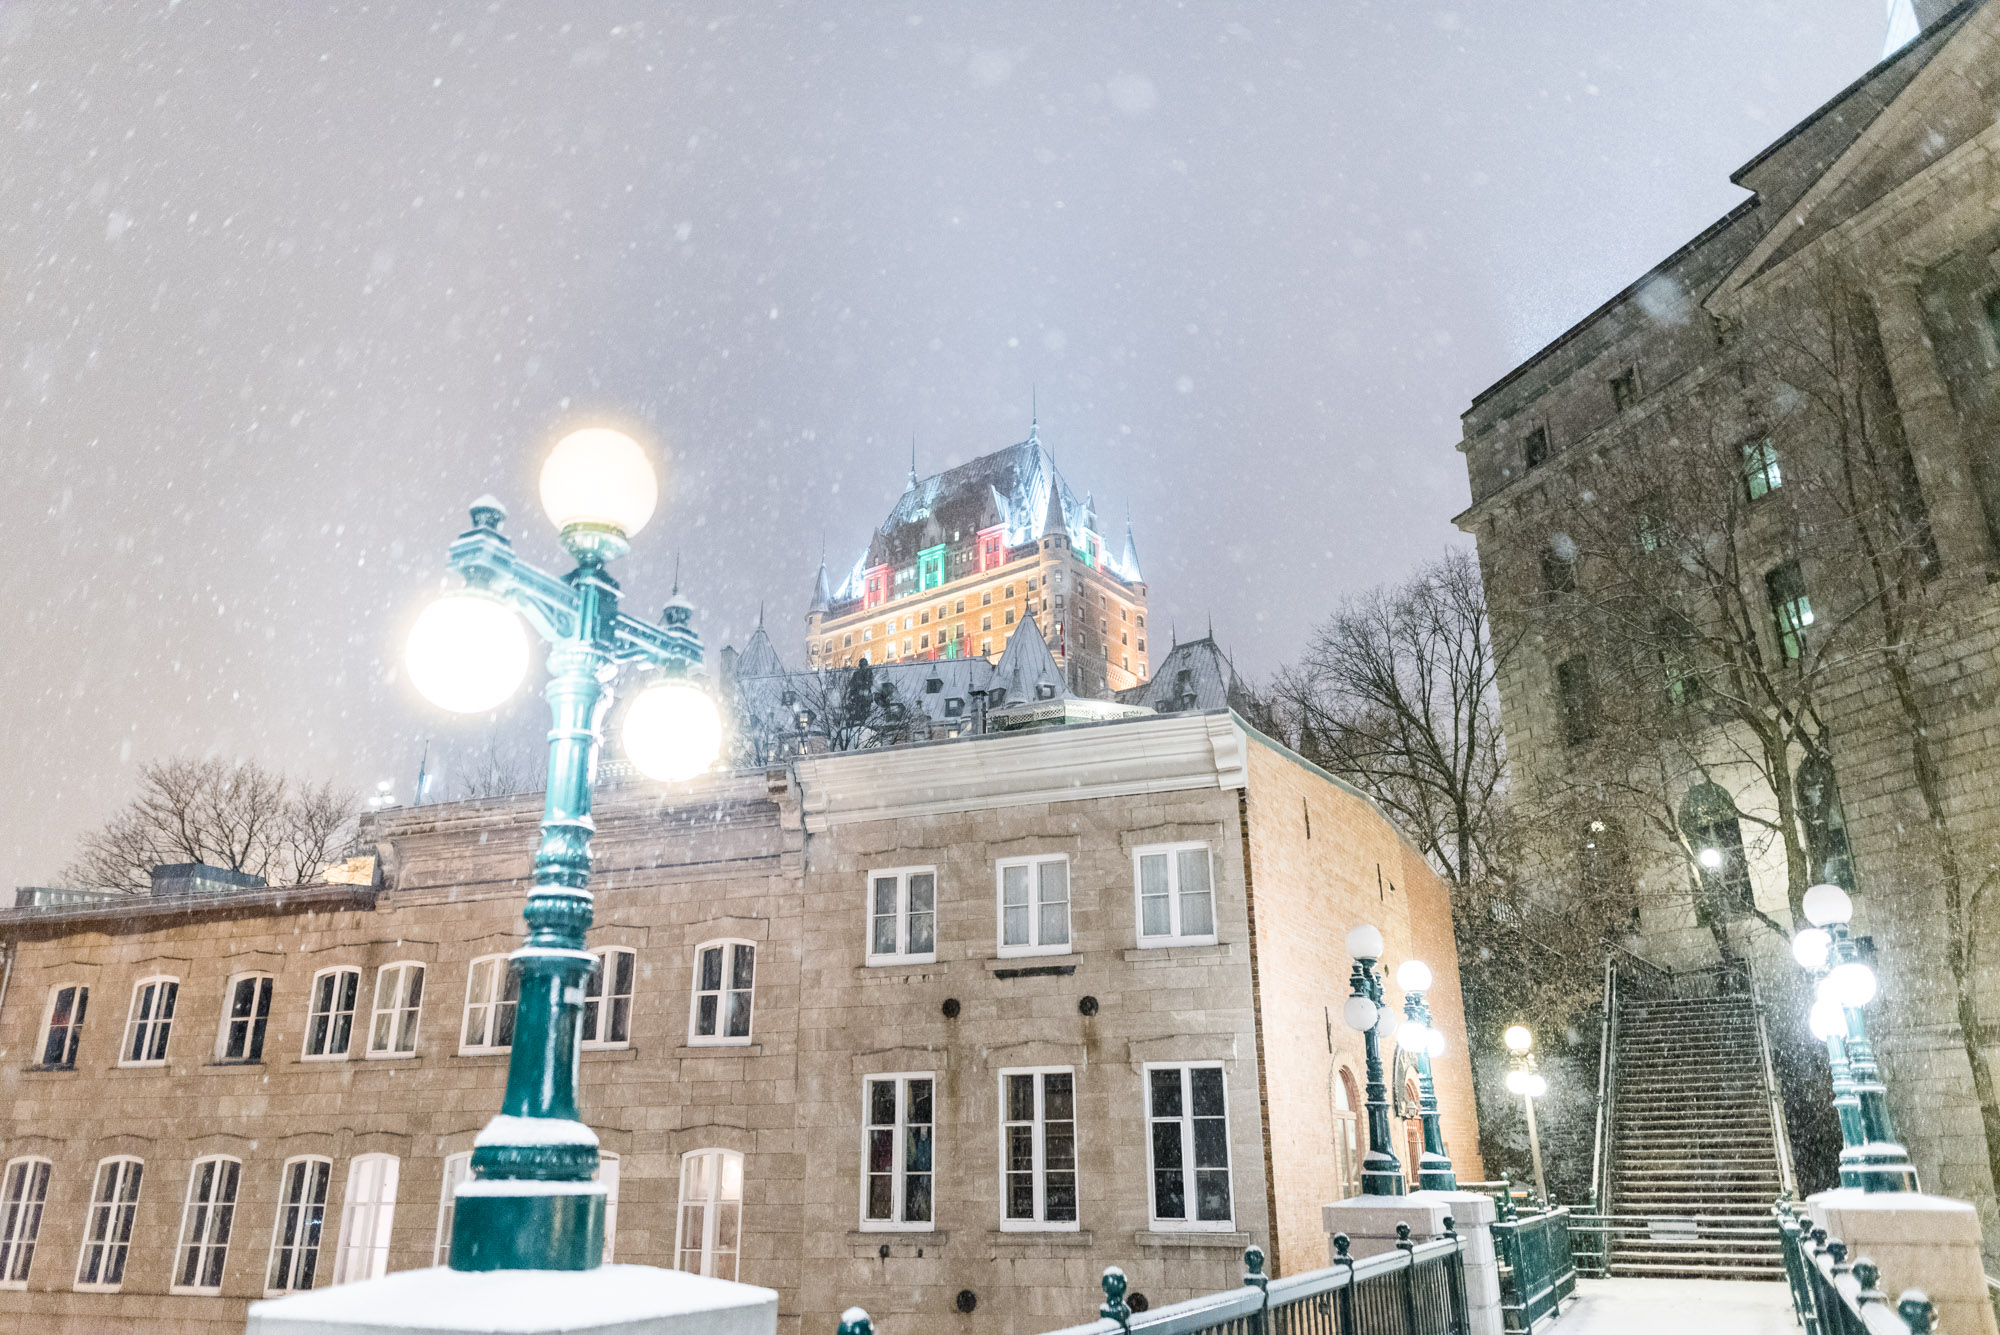 Jeff On The Road - Travel - Winter Wonderland in Quebec City - All photos are under Copyright © 2017 Jeff Frenette Photography / dezjeff. To use the photos, please contact me at dezjeff@me.com.